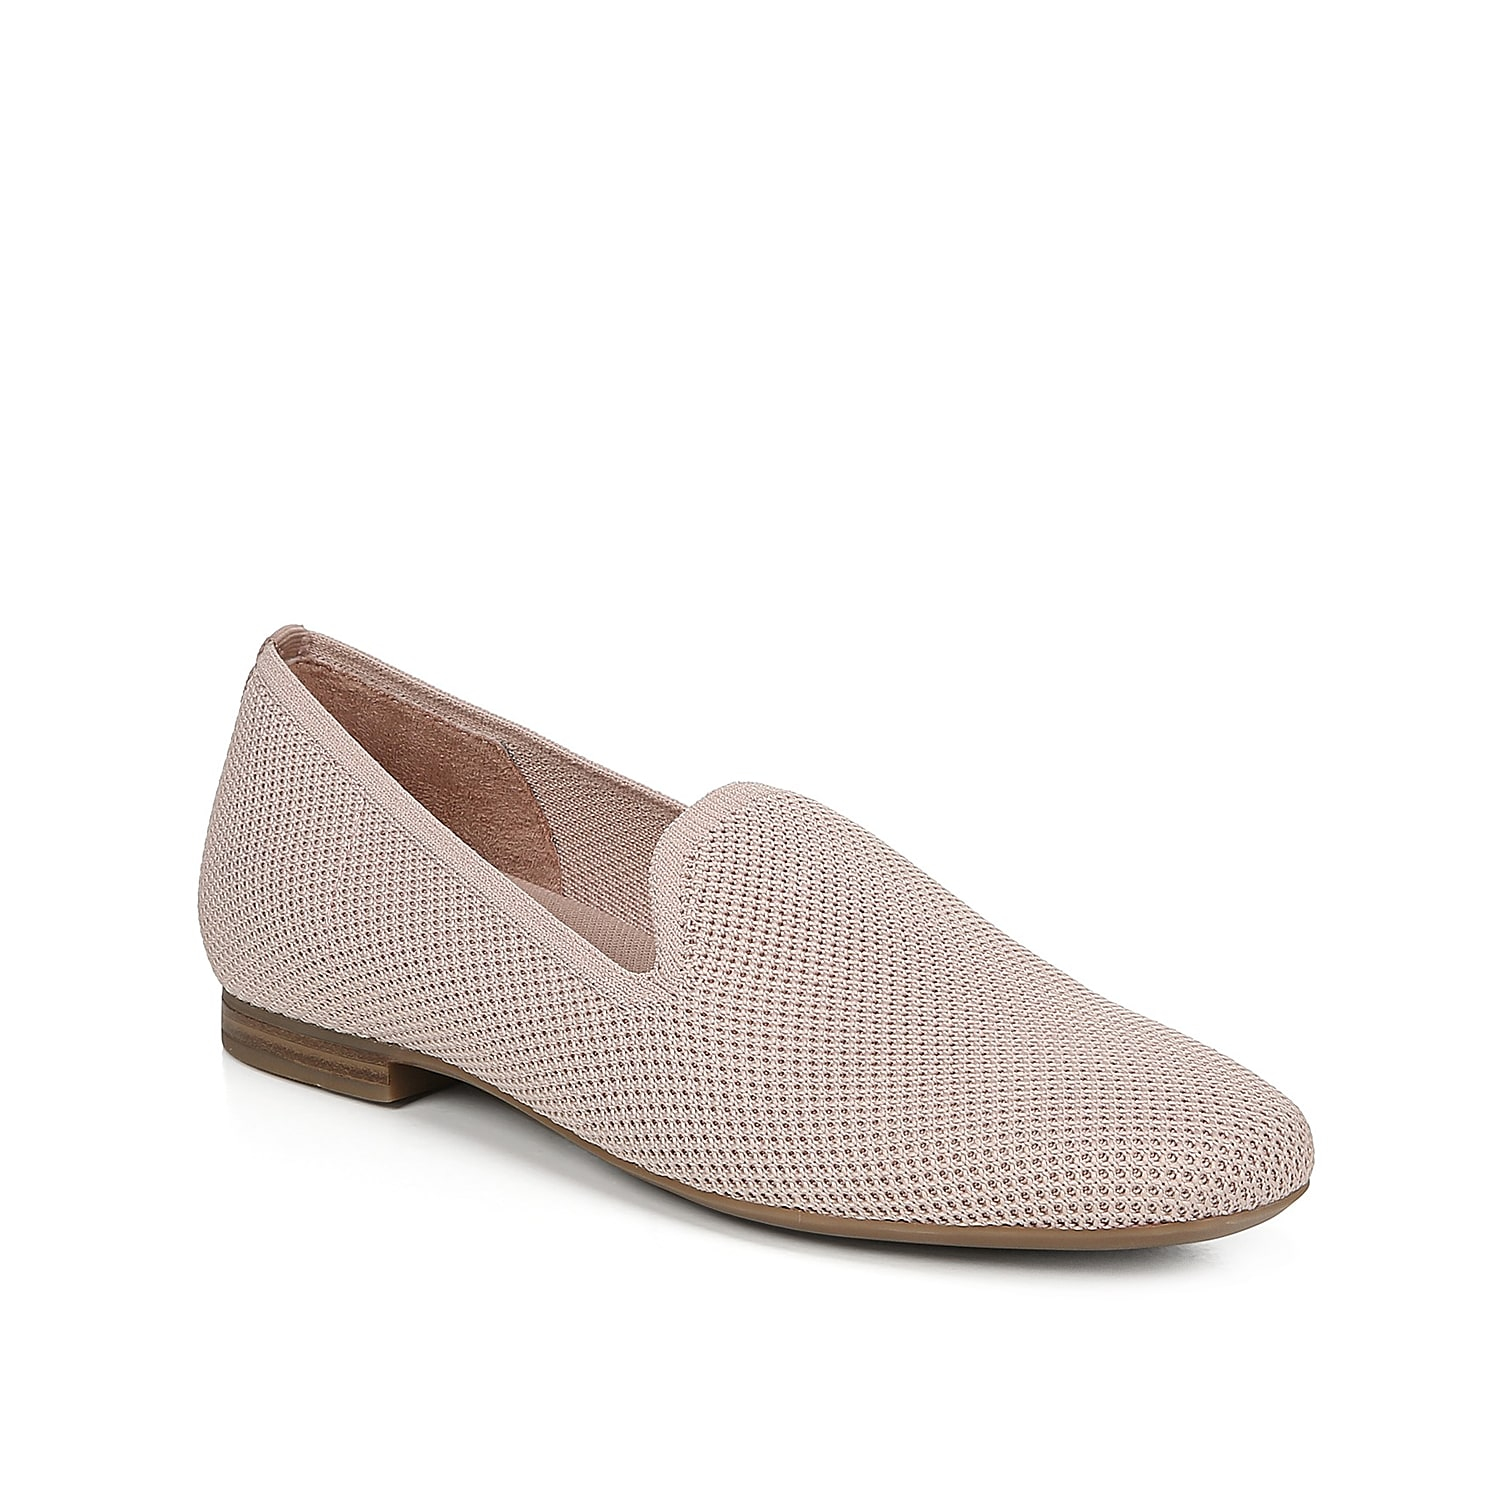 Bring a laid-back feel to any look with the Kit loafers from Naturalizer. These breathable knit slip-ons are grounded with an N5 Contour footbed and flexible sole for heel-to-toe balance.